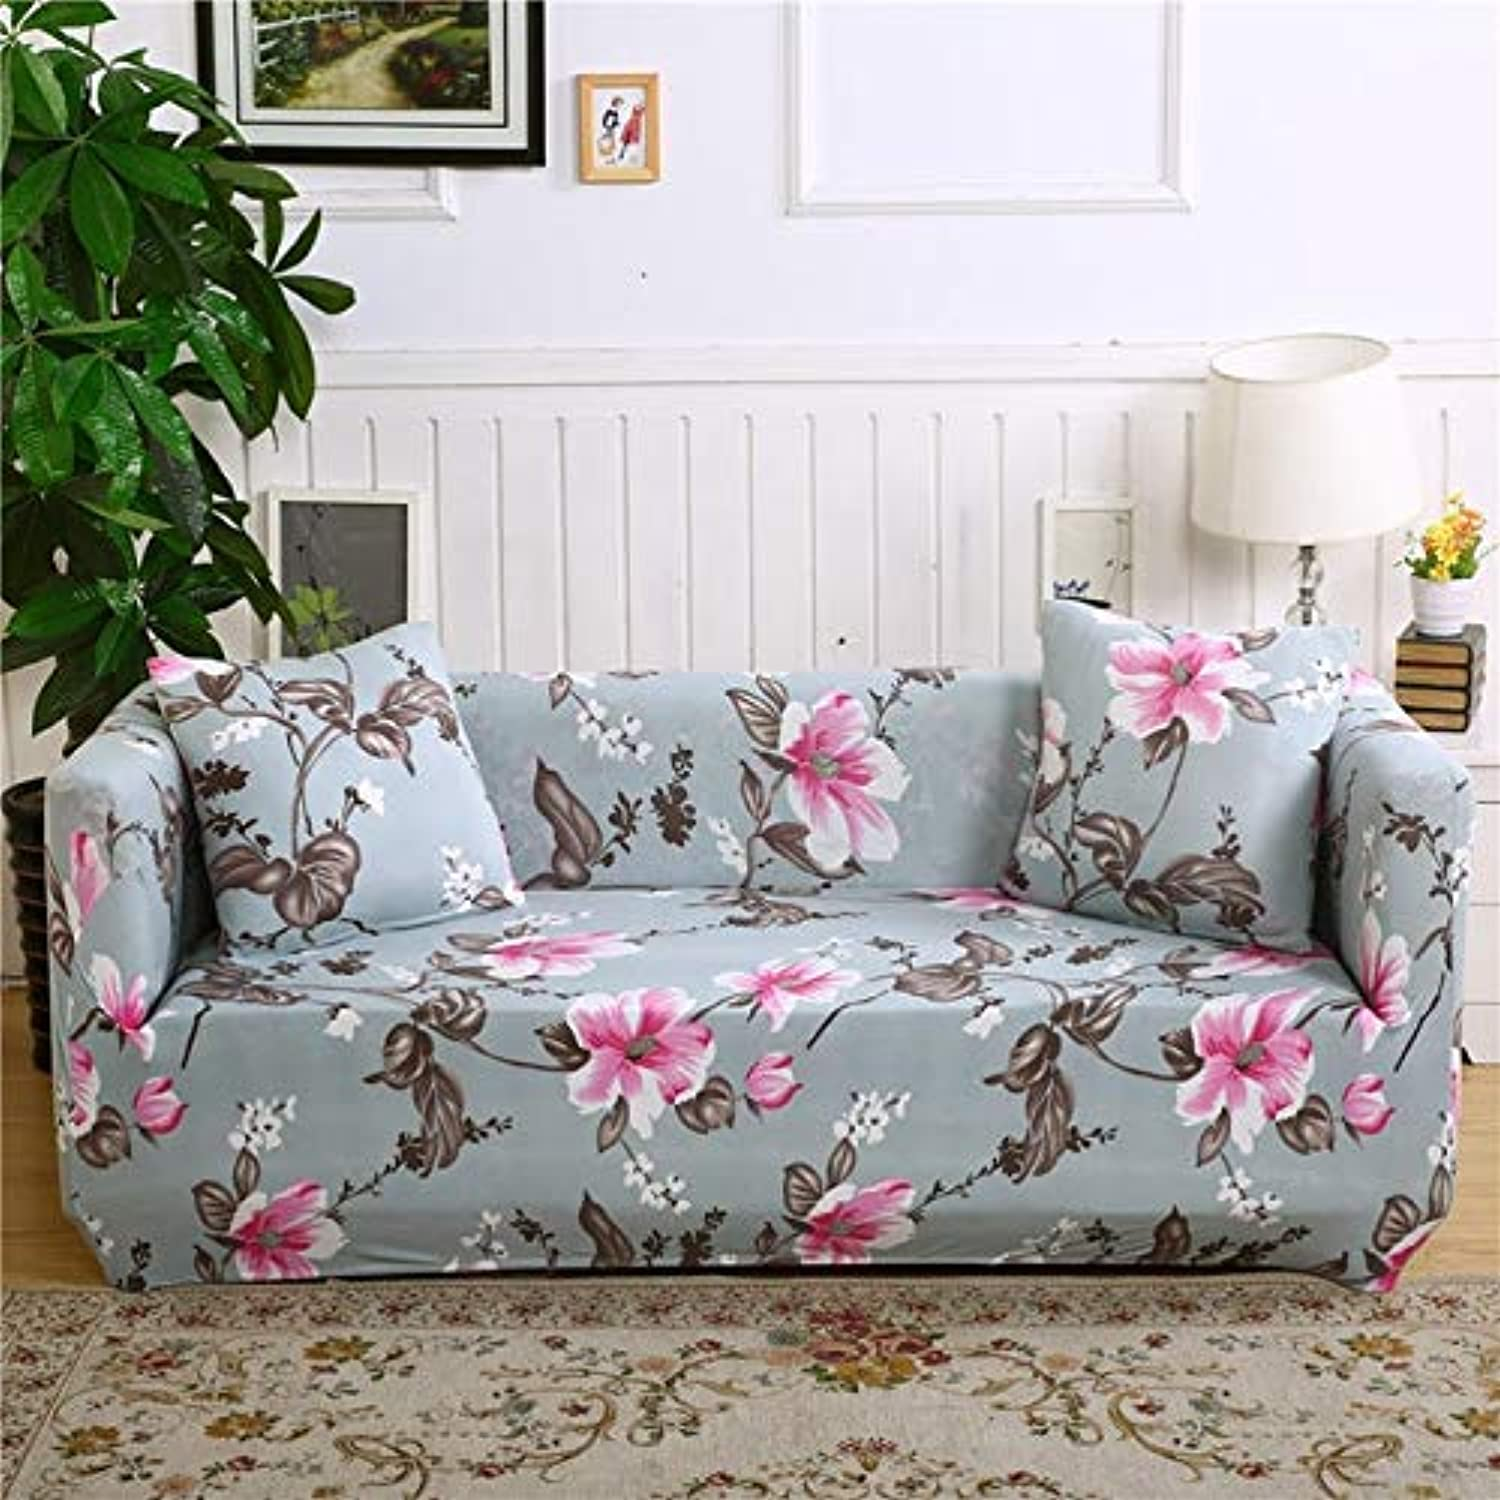 Floral Printing Stretch Elastic Sofa Cover Cotton Sofa Towel Slip-Resistant Sofa Covers for Living Room   colour17, 3-Seater 195-230cm